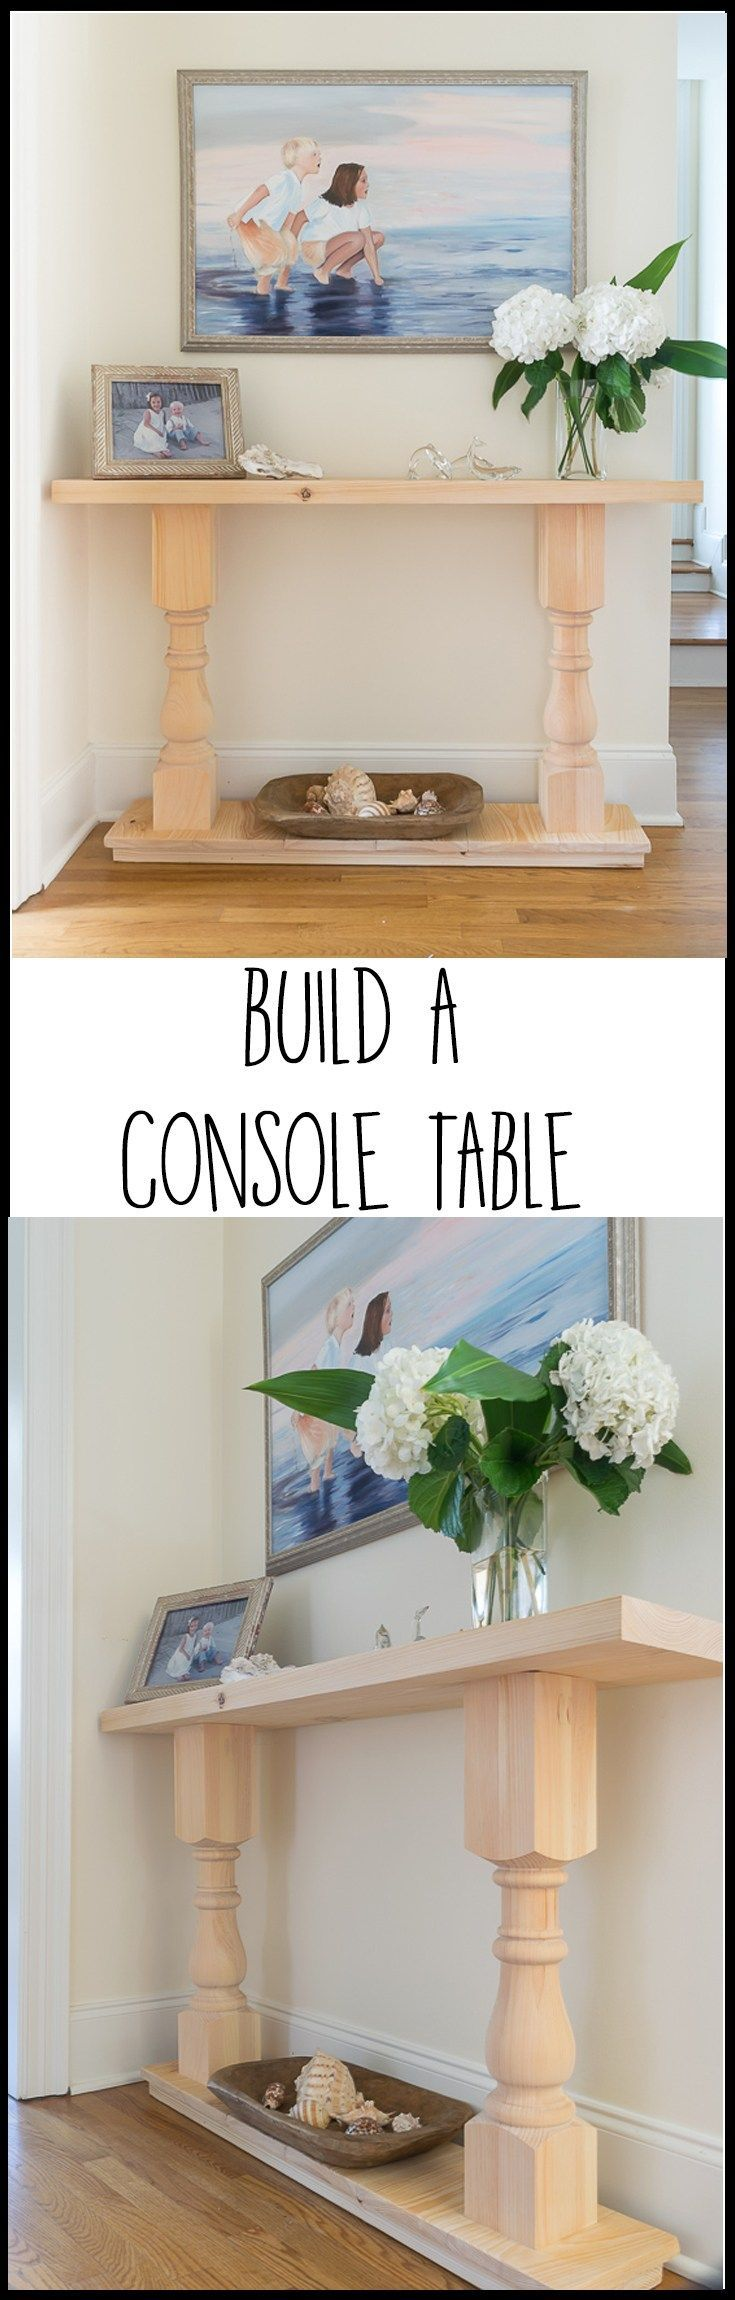 This easy DIY console table was the first piece of furniture I ever tried to build. Step by step, illustrated tutorial with recommended supplies and tools. A perfect spruce-up for my home decor.